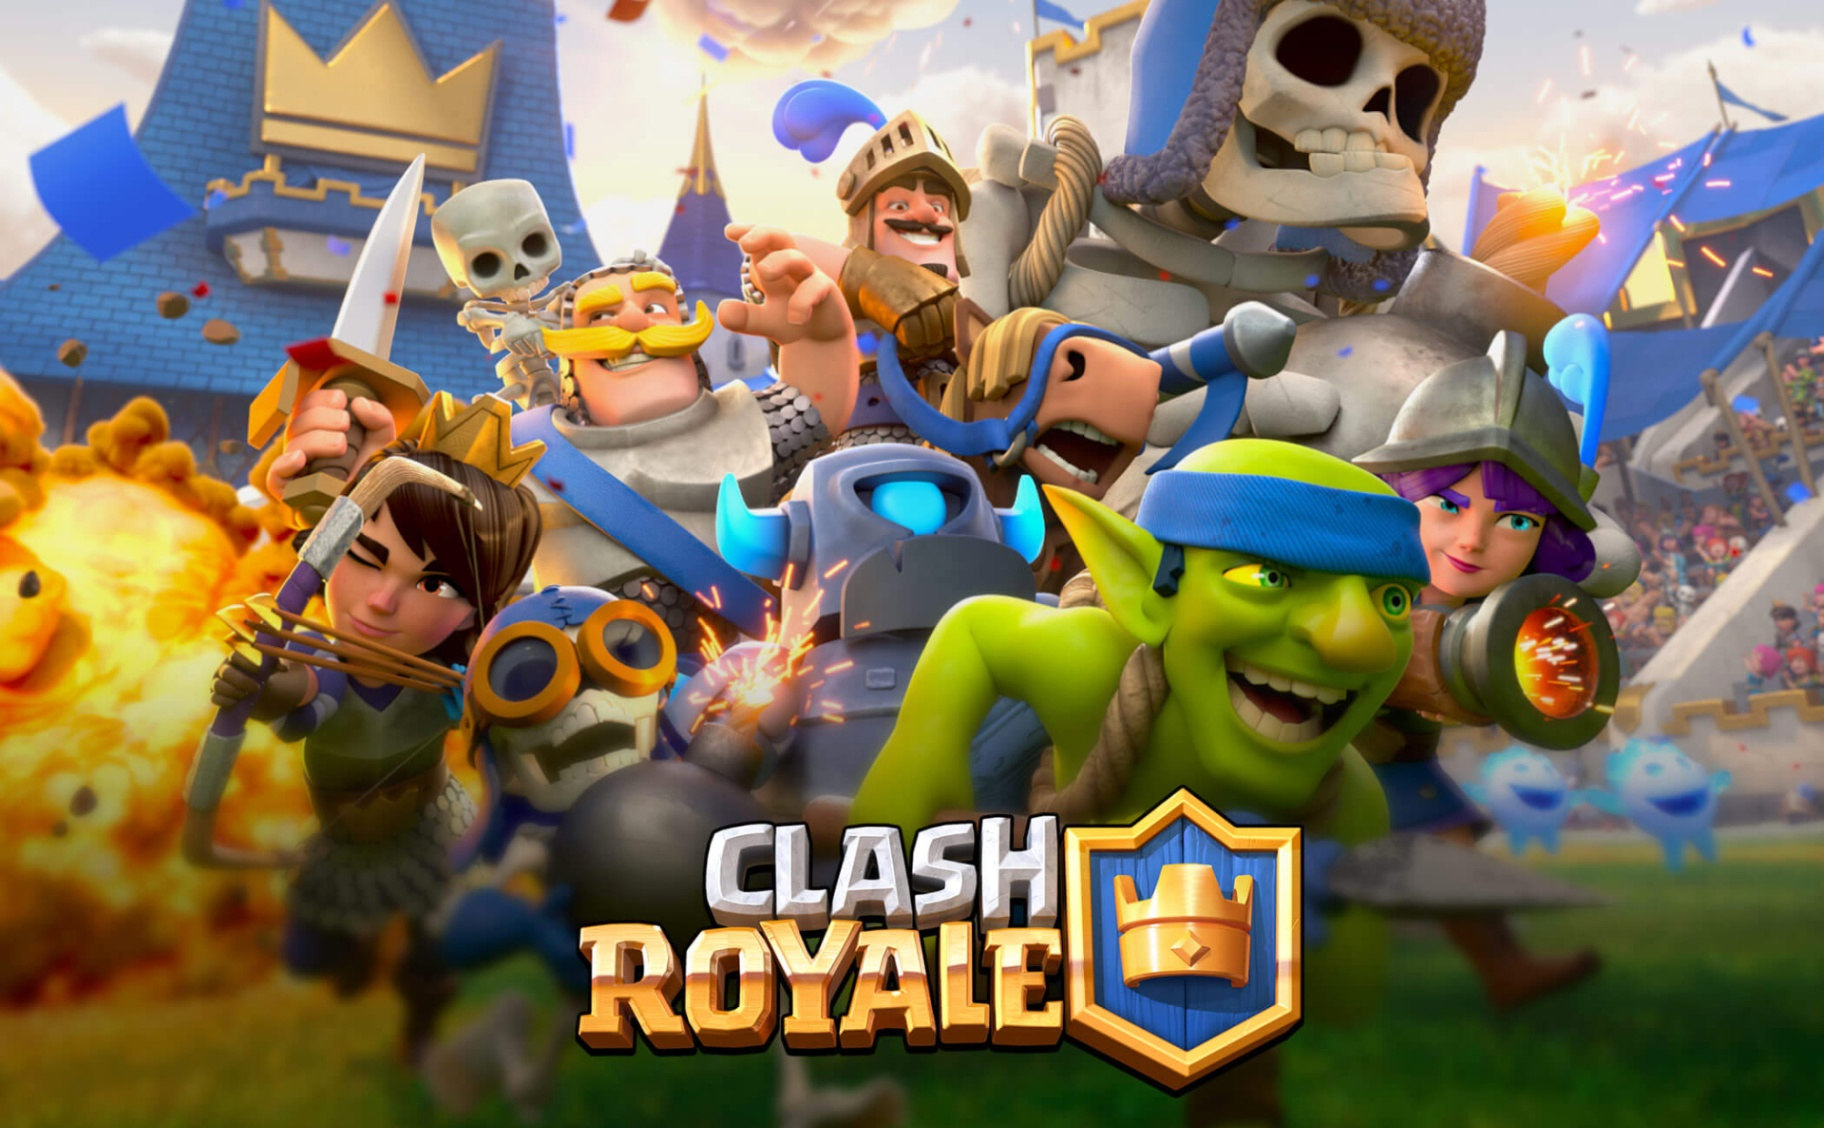 How To Get Free Gems On Clash Royale